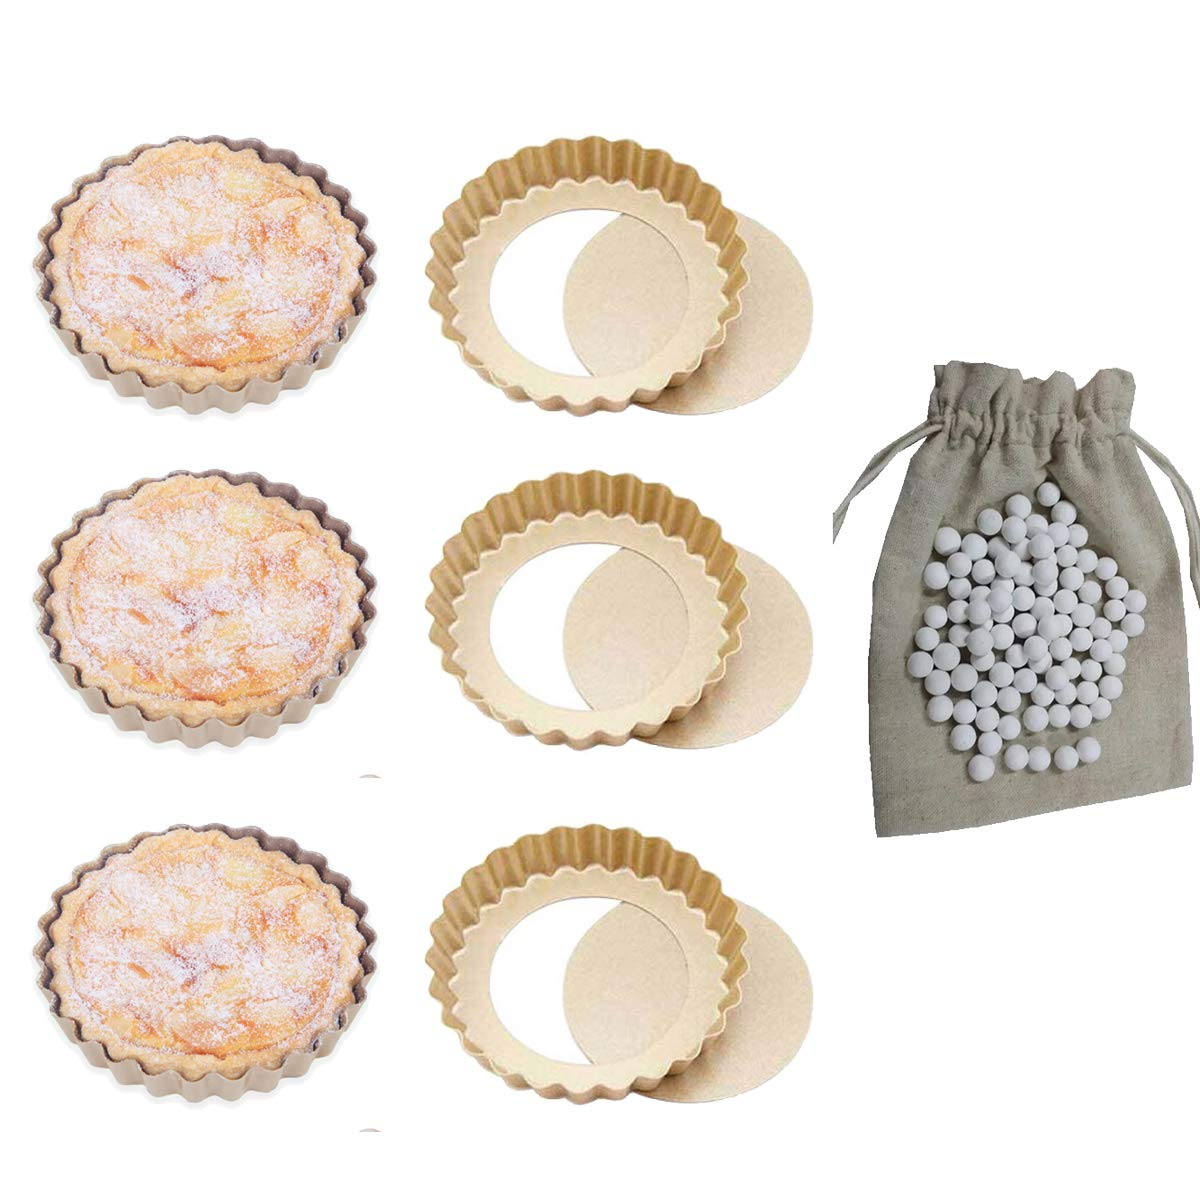 CANDeal 6 Packs Non stick 4 Inch Round Quiche Pans Removable Bottom Mini Tart Pans Set Bonus 1LB Pie Weights by CANDeal